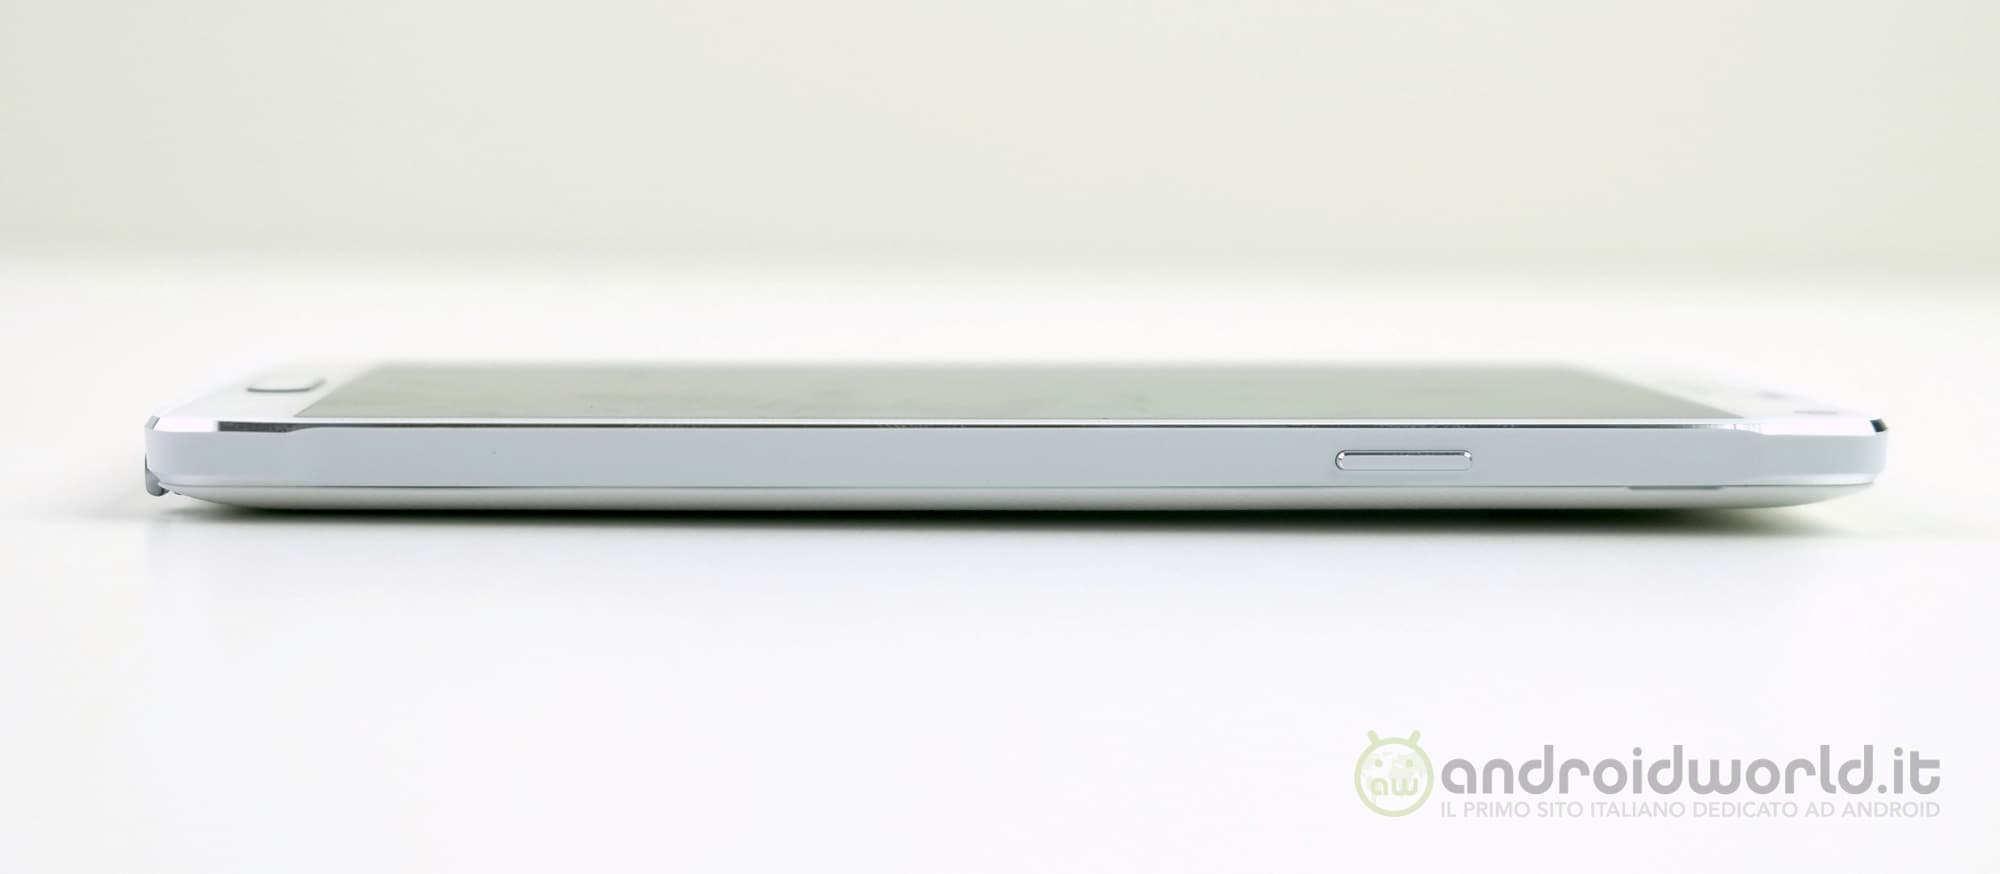 Samsung Galaxy Note 4 Il Nostro Unboxing Foto E Video